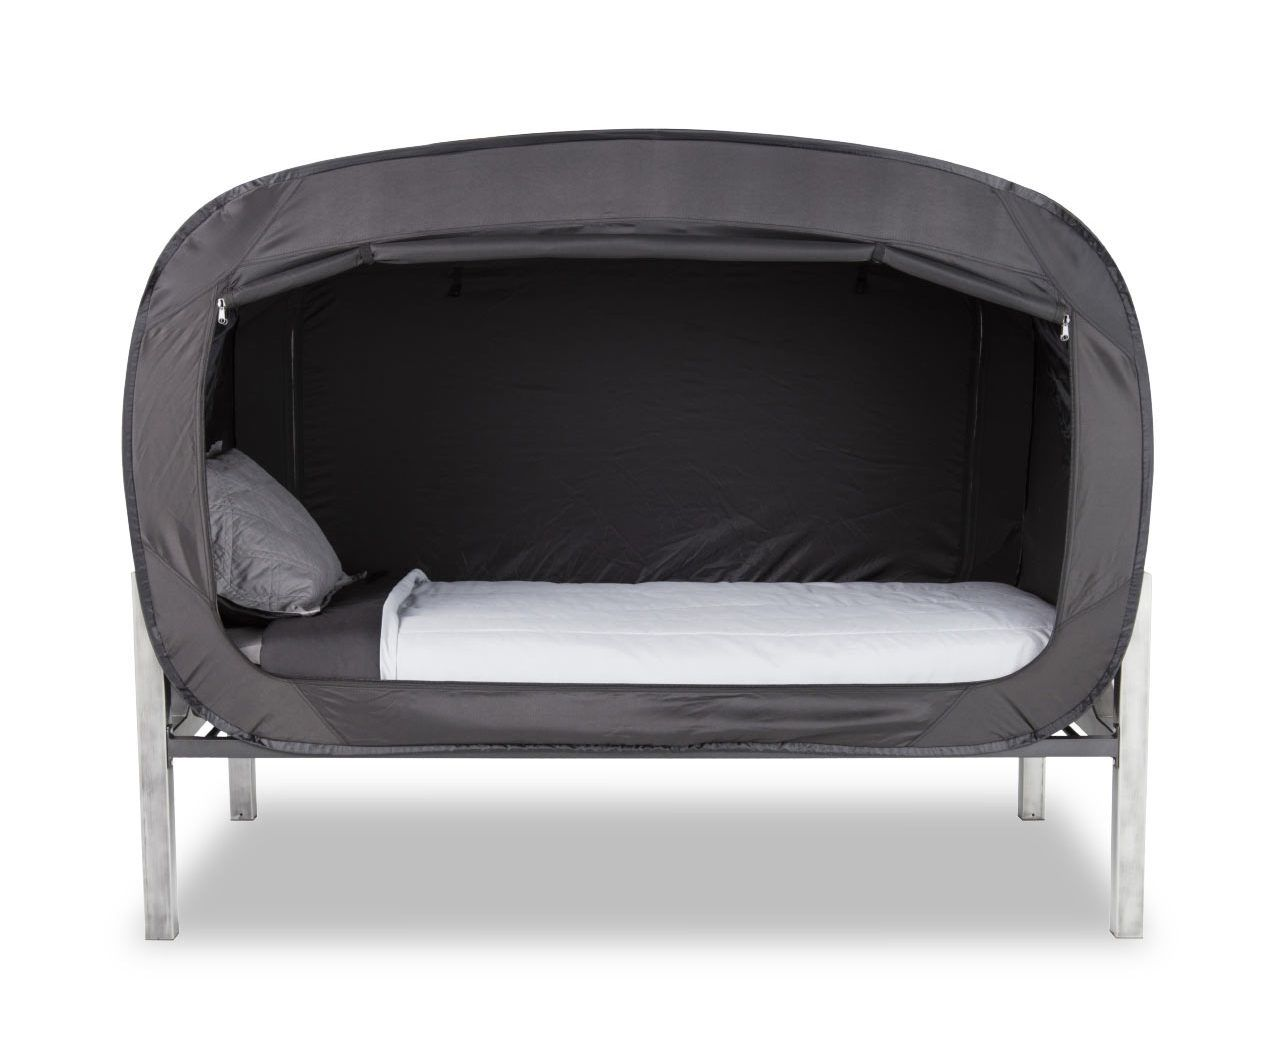 Could you use a little more coziness when curling up for a nap? Privacy Pop has come up with the Bed Tent, a portable enclosure that works with your current mattress and bed frame to give you better rest.